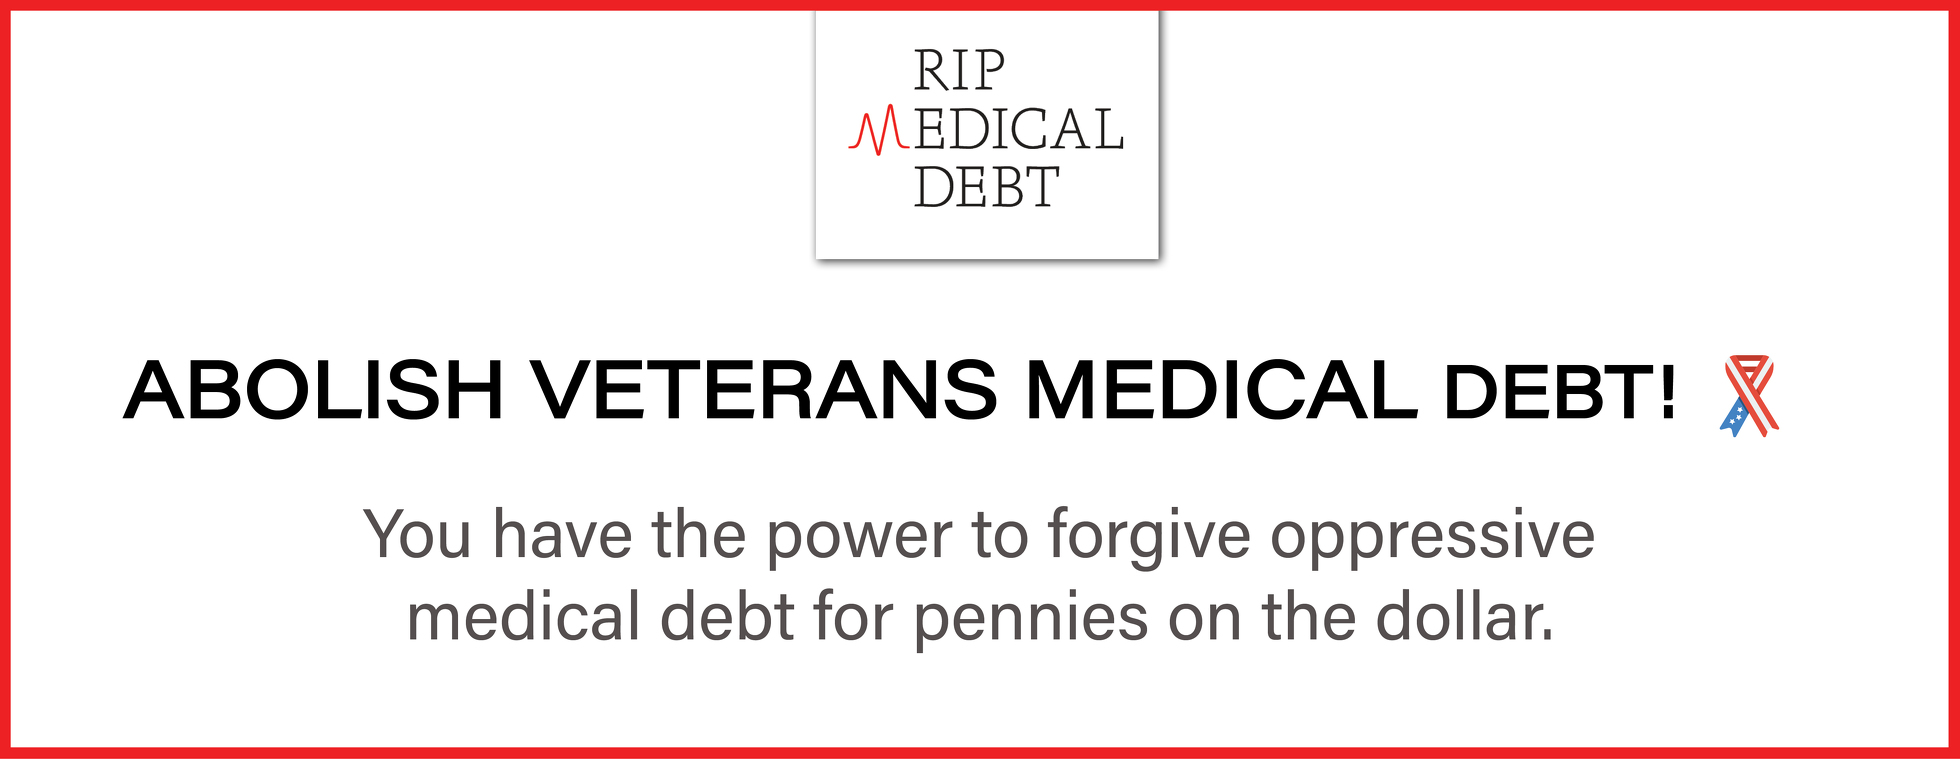 Abolish Veterans Medical Debt (National Veterans Campaign)